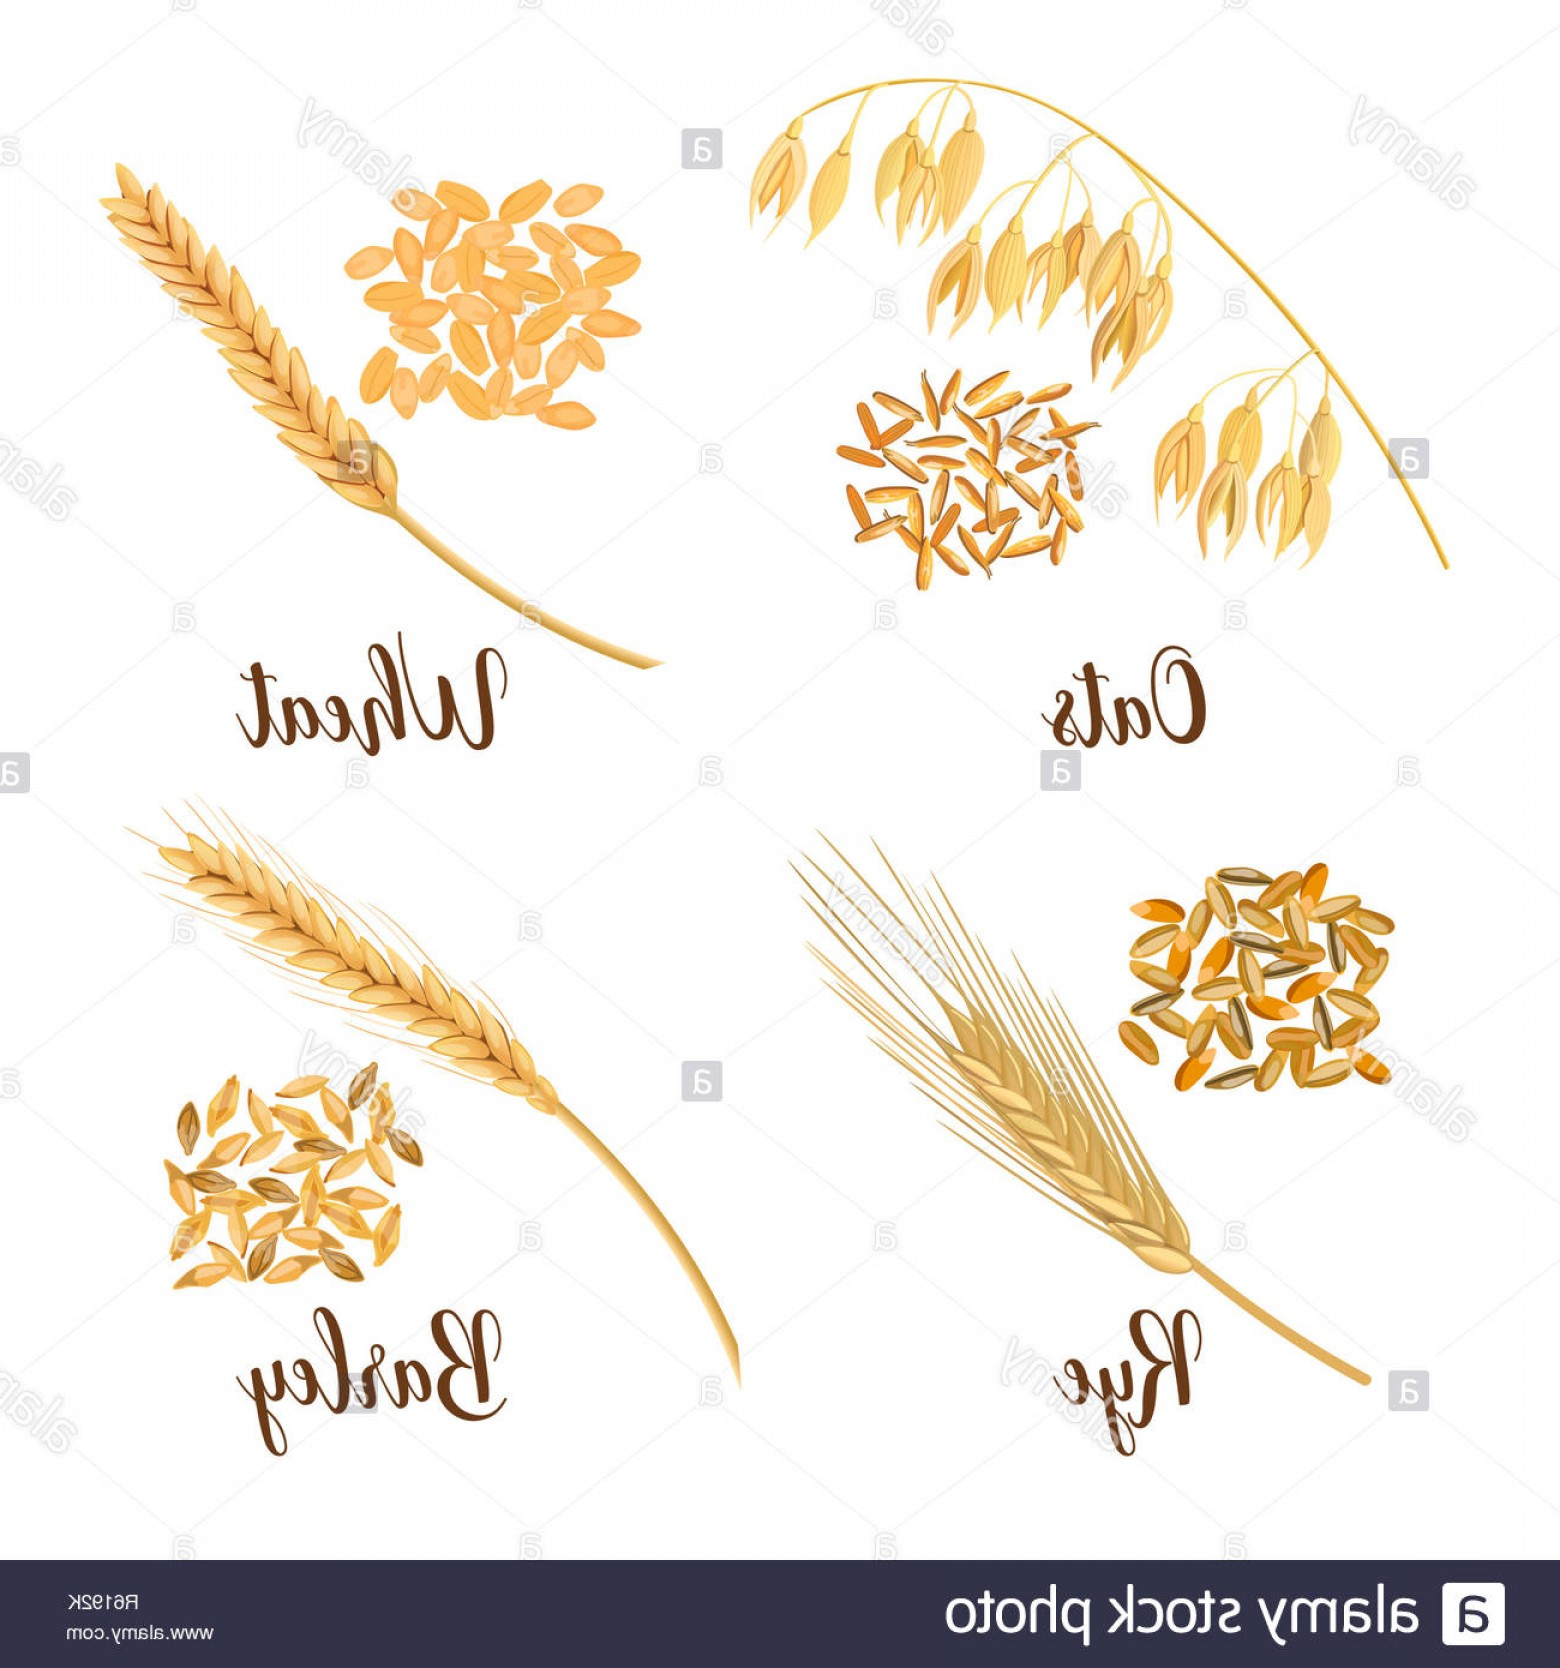 Wheat Flourishes Vector: Wheat Barley Oat And Rye Cereals D Icon Vector Set Four Cereals Grains And Ears Image